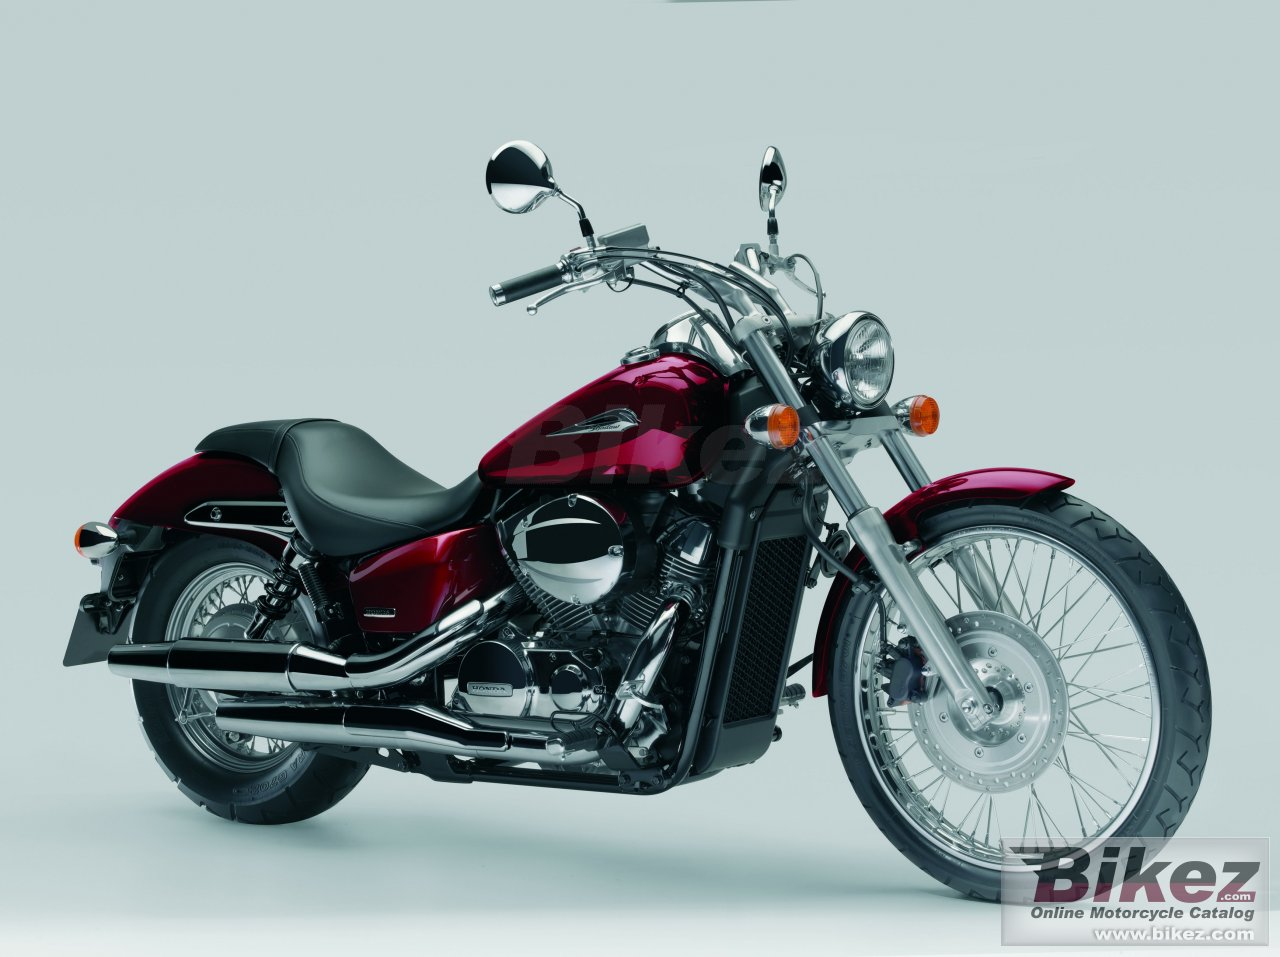 Big Honda shadow spirit 750 dc (vt 750 dc) picture and wallpaper from Bikez.com